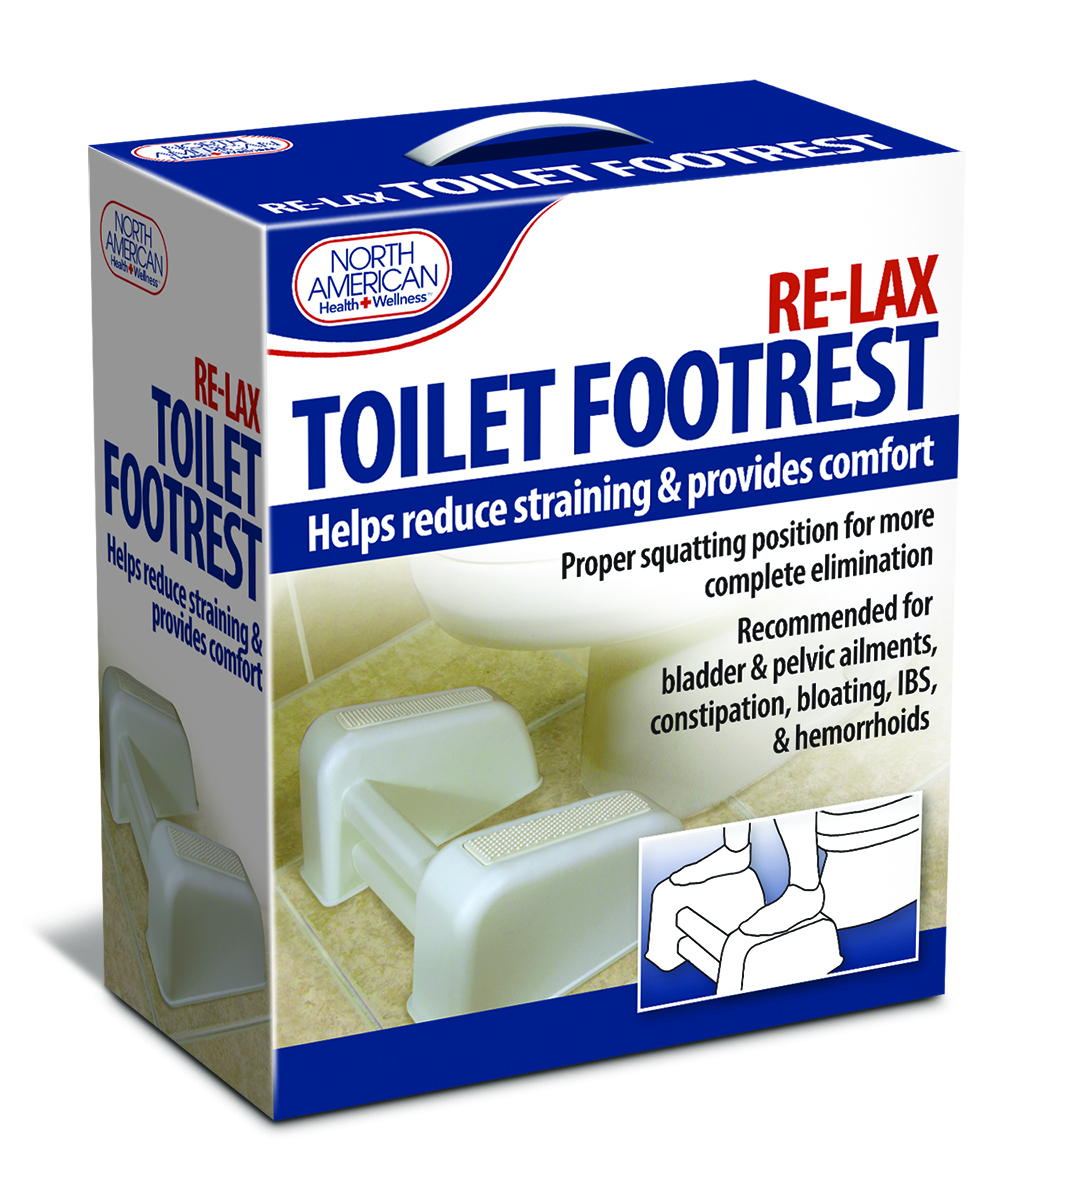 AMERICAN JB6398 RE-LAX TOILET FOOT REST THAT HELPS POSITION